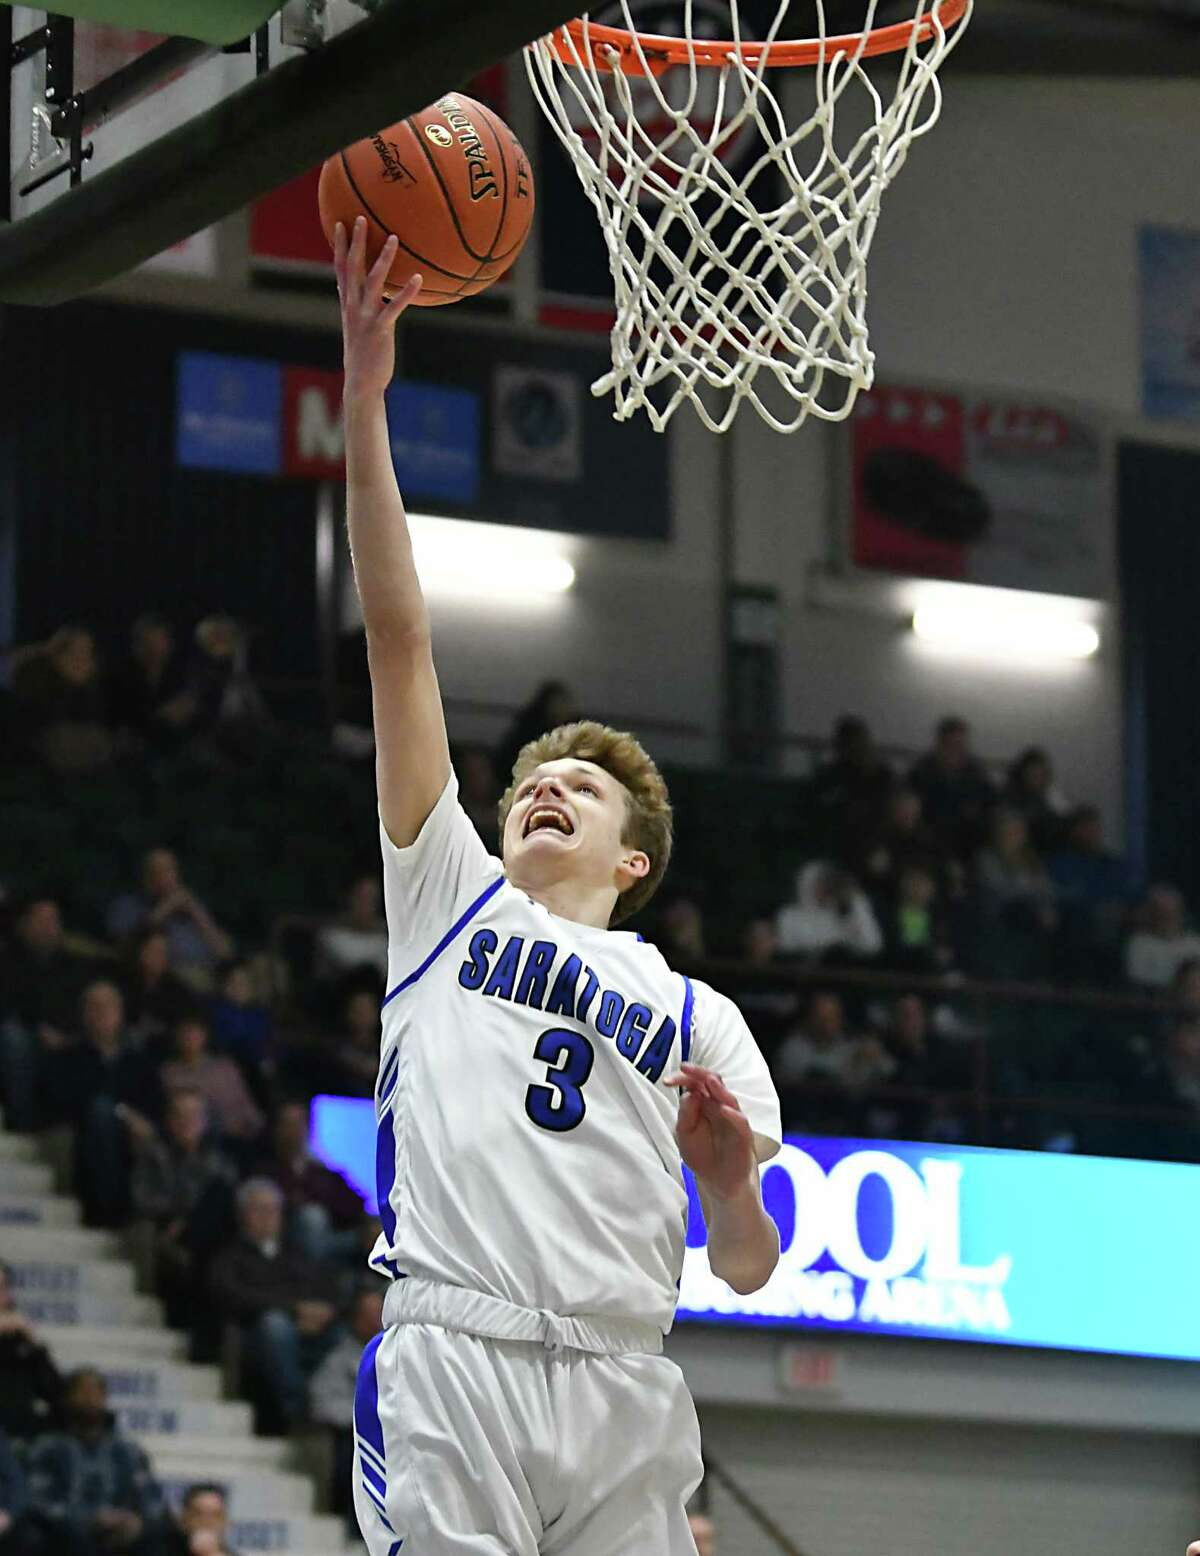 Saratoga's Charlie Beck lays one up during a Class Class AA basketball semifinal game against Shenendehowa at the Cool Insuring Arena on Tuesday, Feb. 26, 2019 in Glens Falls, N.Y. (Lori Van Buren/Times Union)